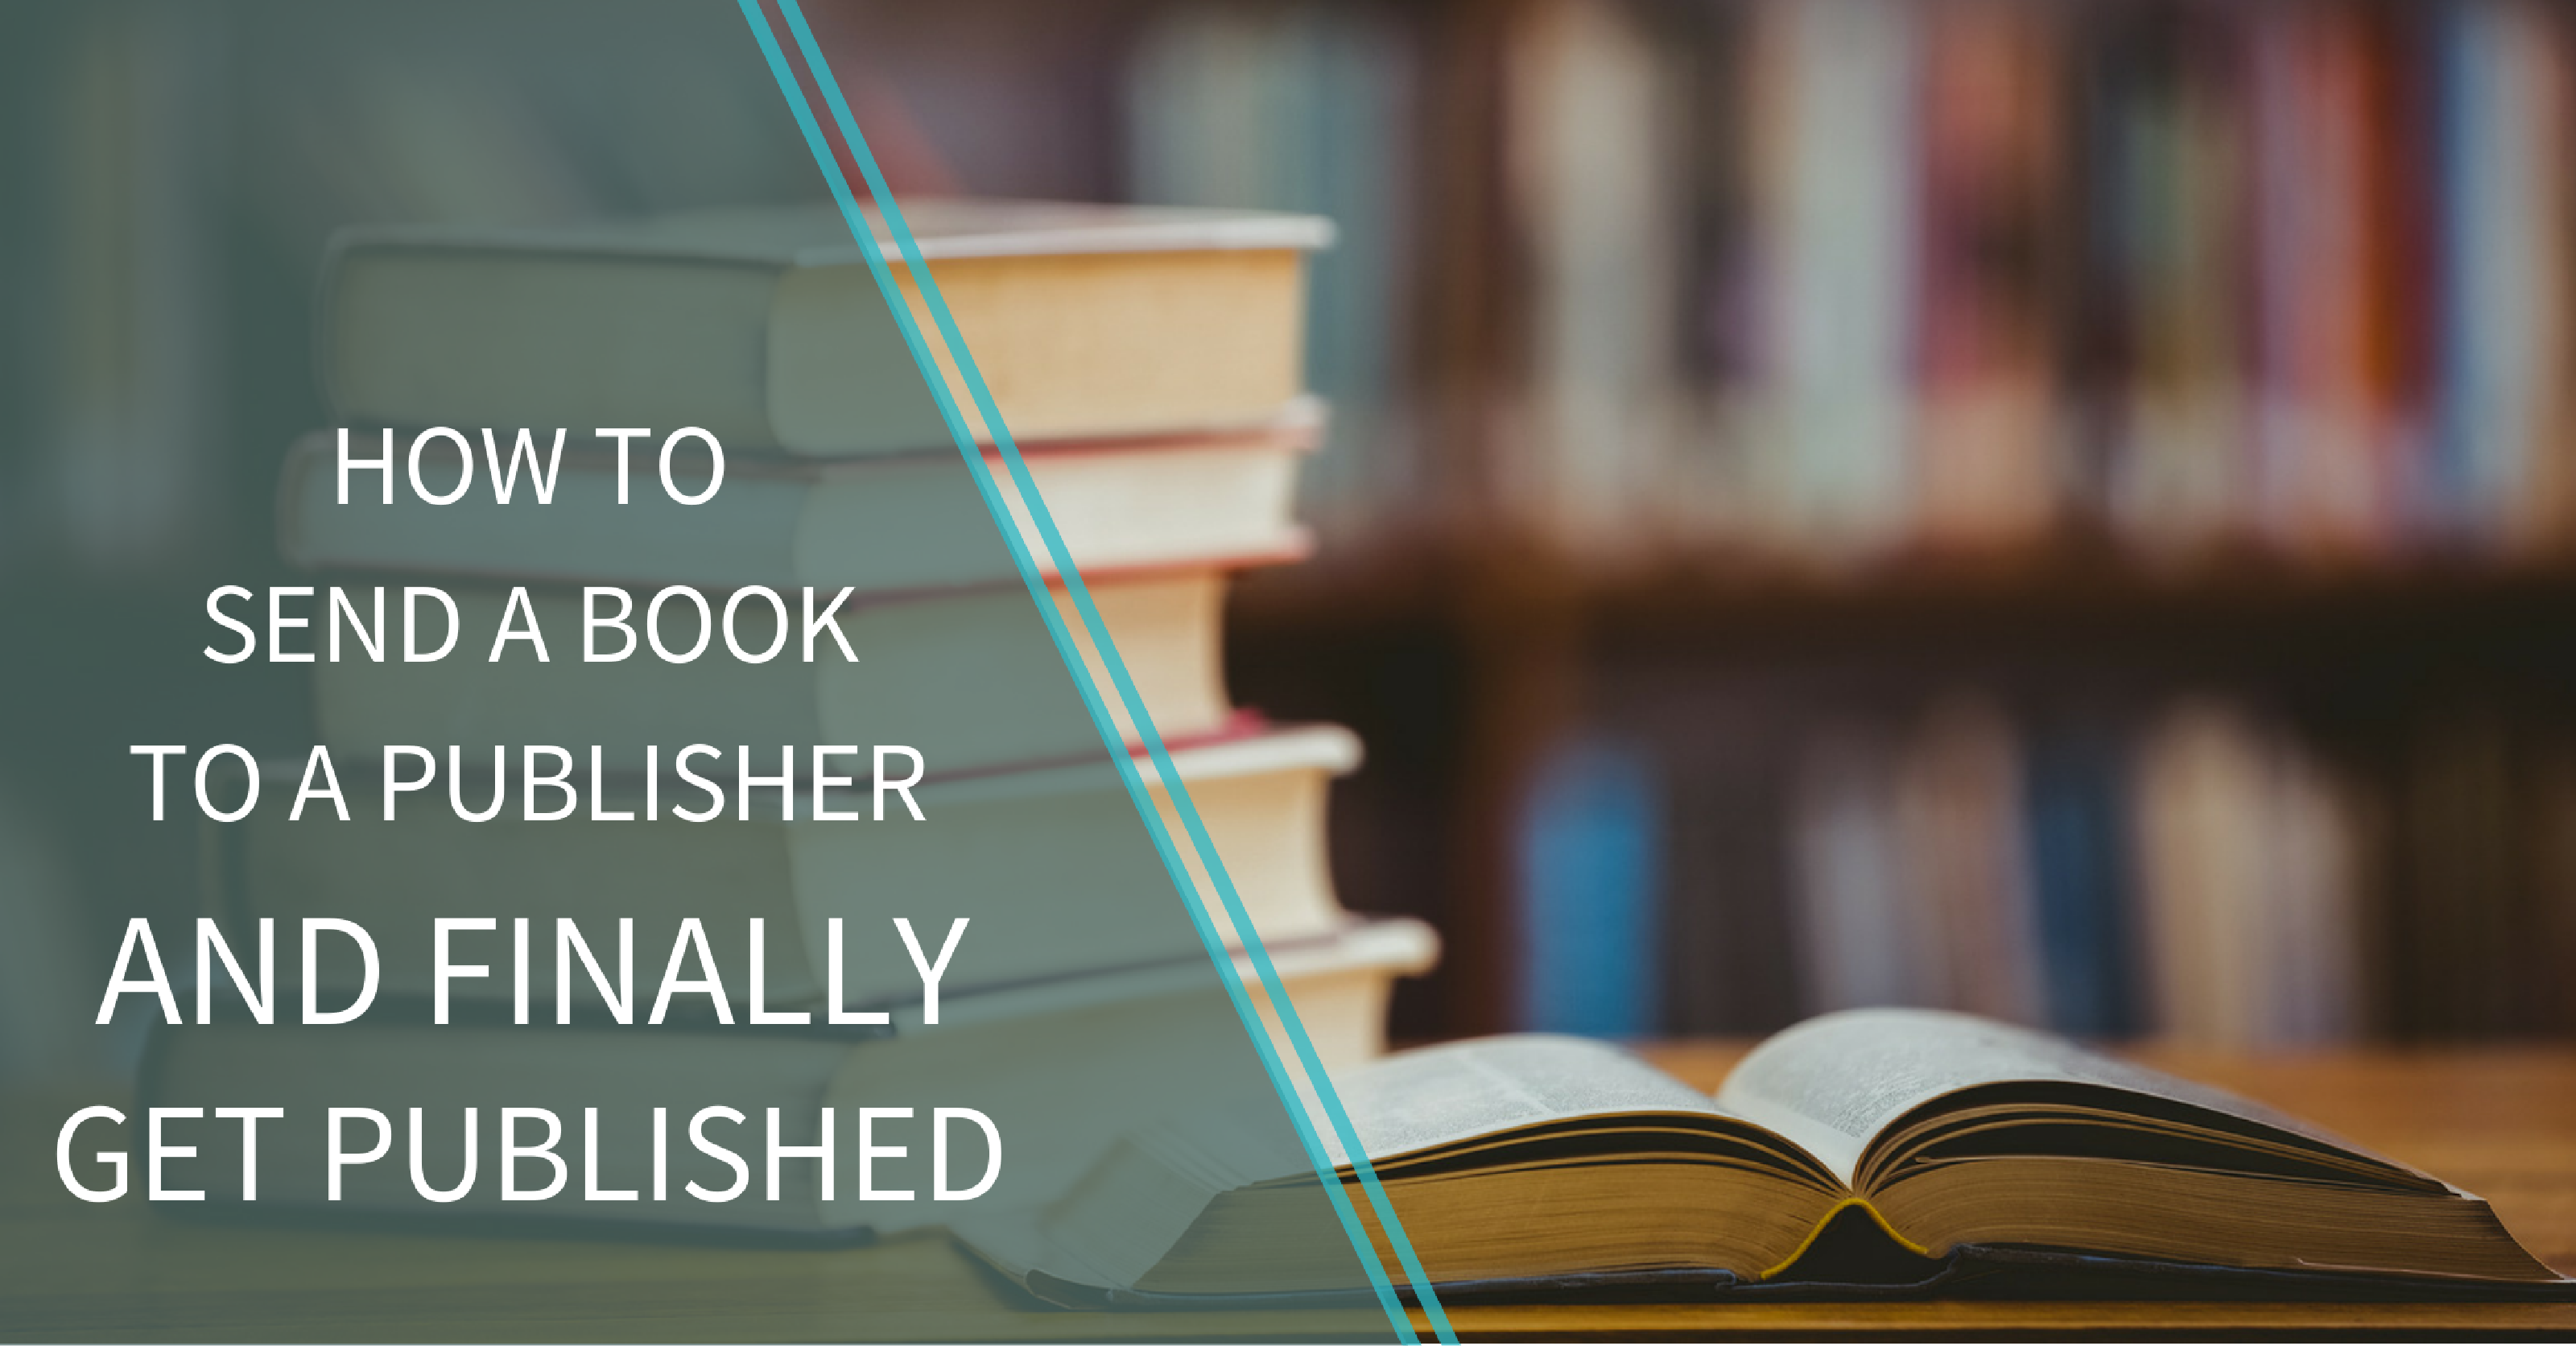 How to Send a Book to a Publisher